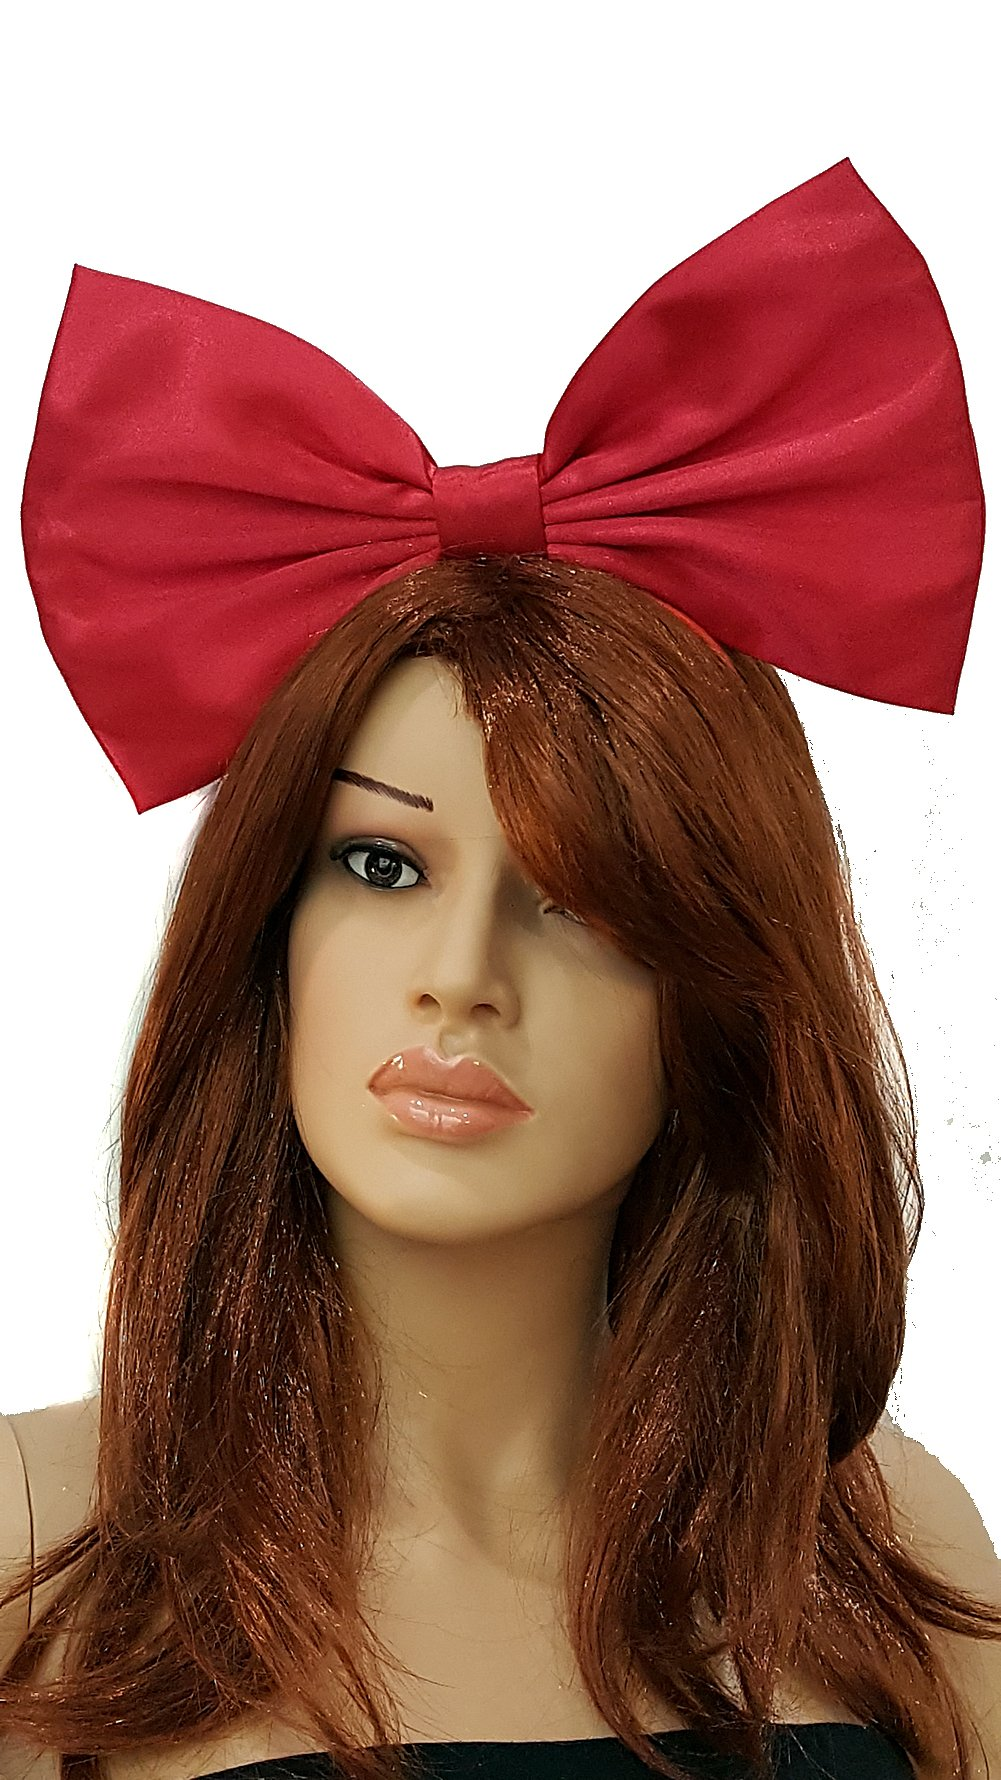 Giant Extra Large Hair Bow Collection- Red Polka Dot''Minnie Mouse'' Inspired Hair Bows- Red- Black- Or Pink- Rockabilly, Pin Up, Retro, cosplay, (Headband, Kiki's Delivery Service in Satin)